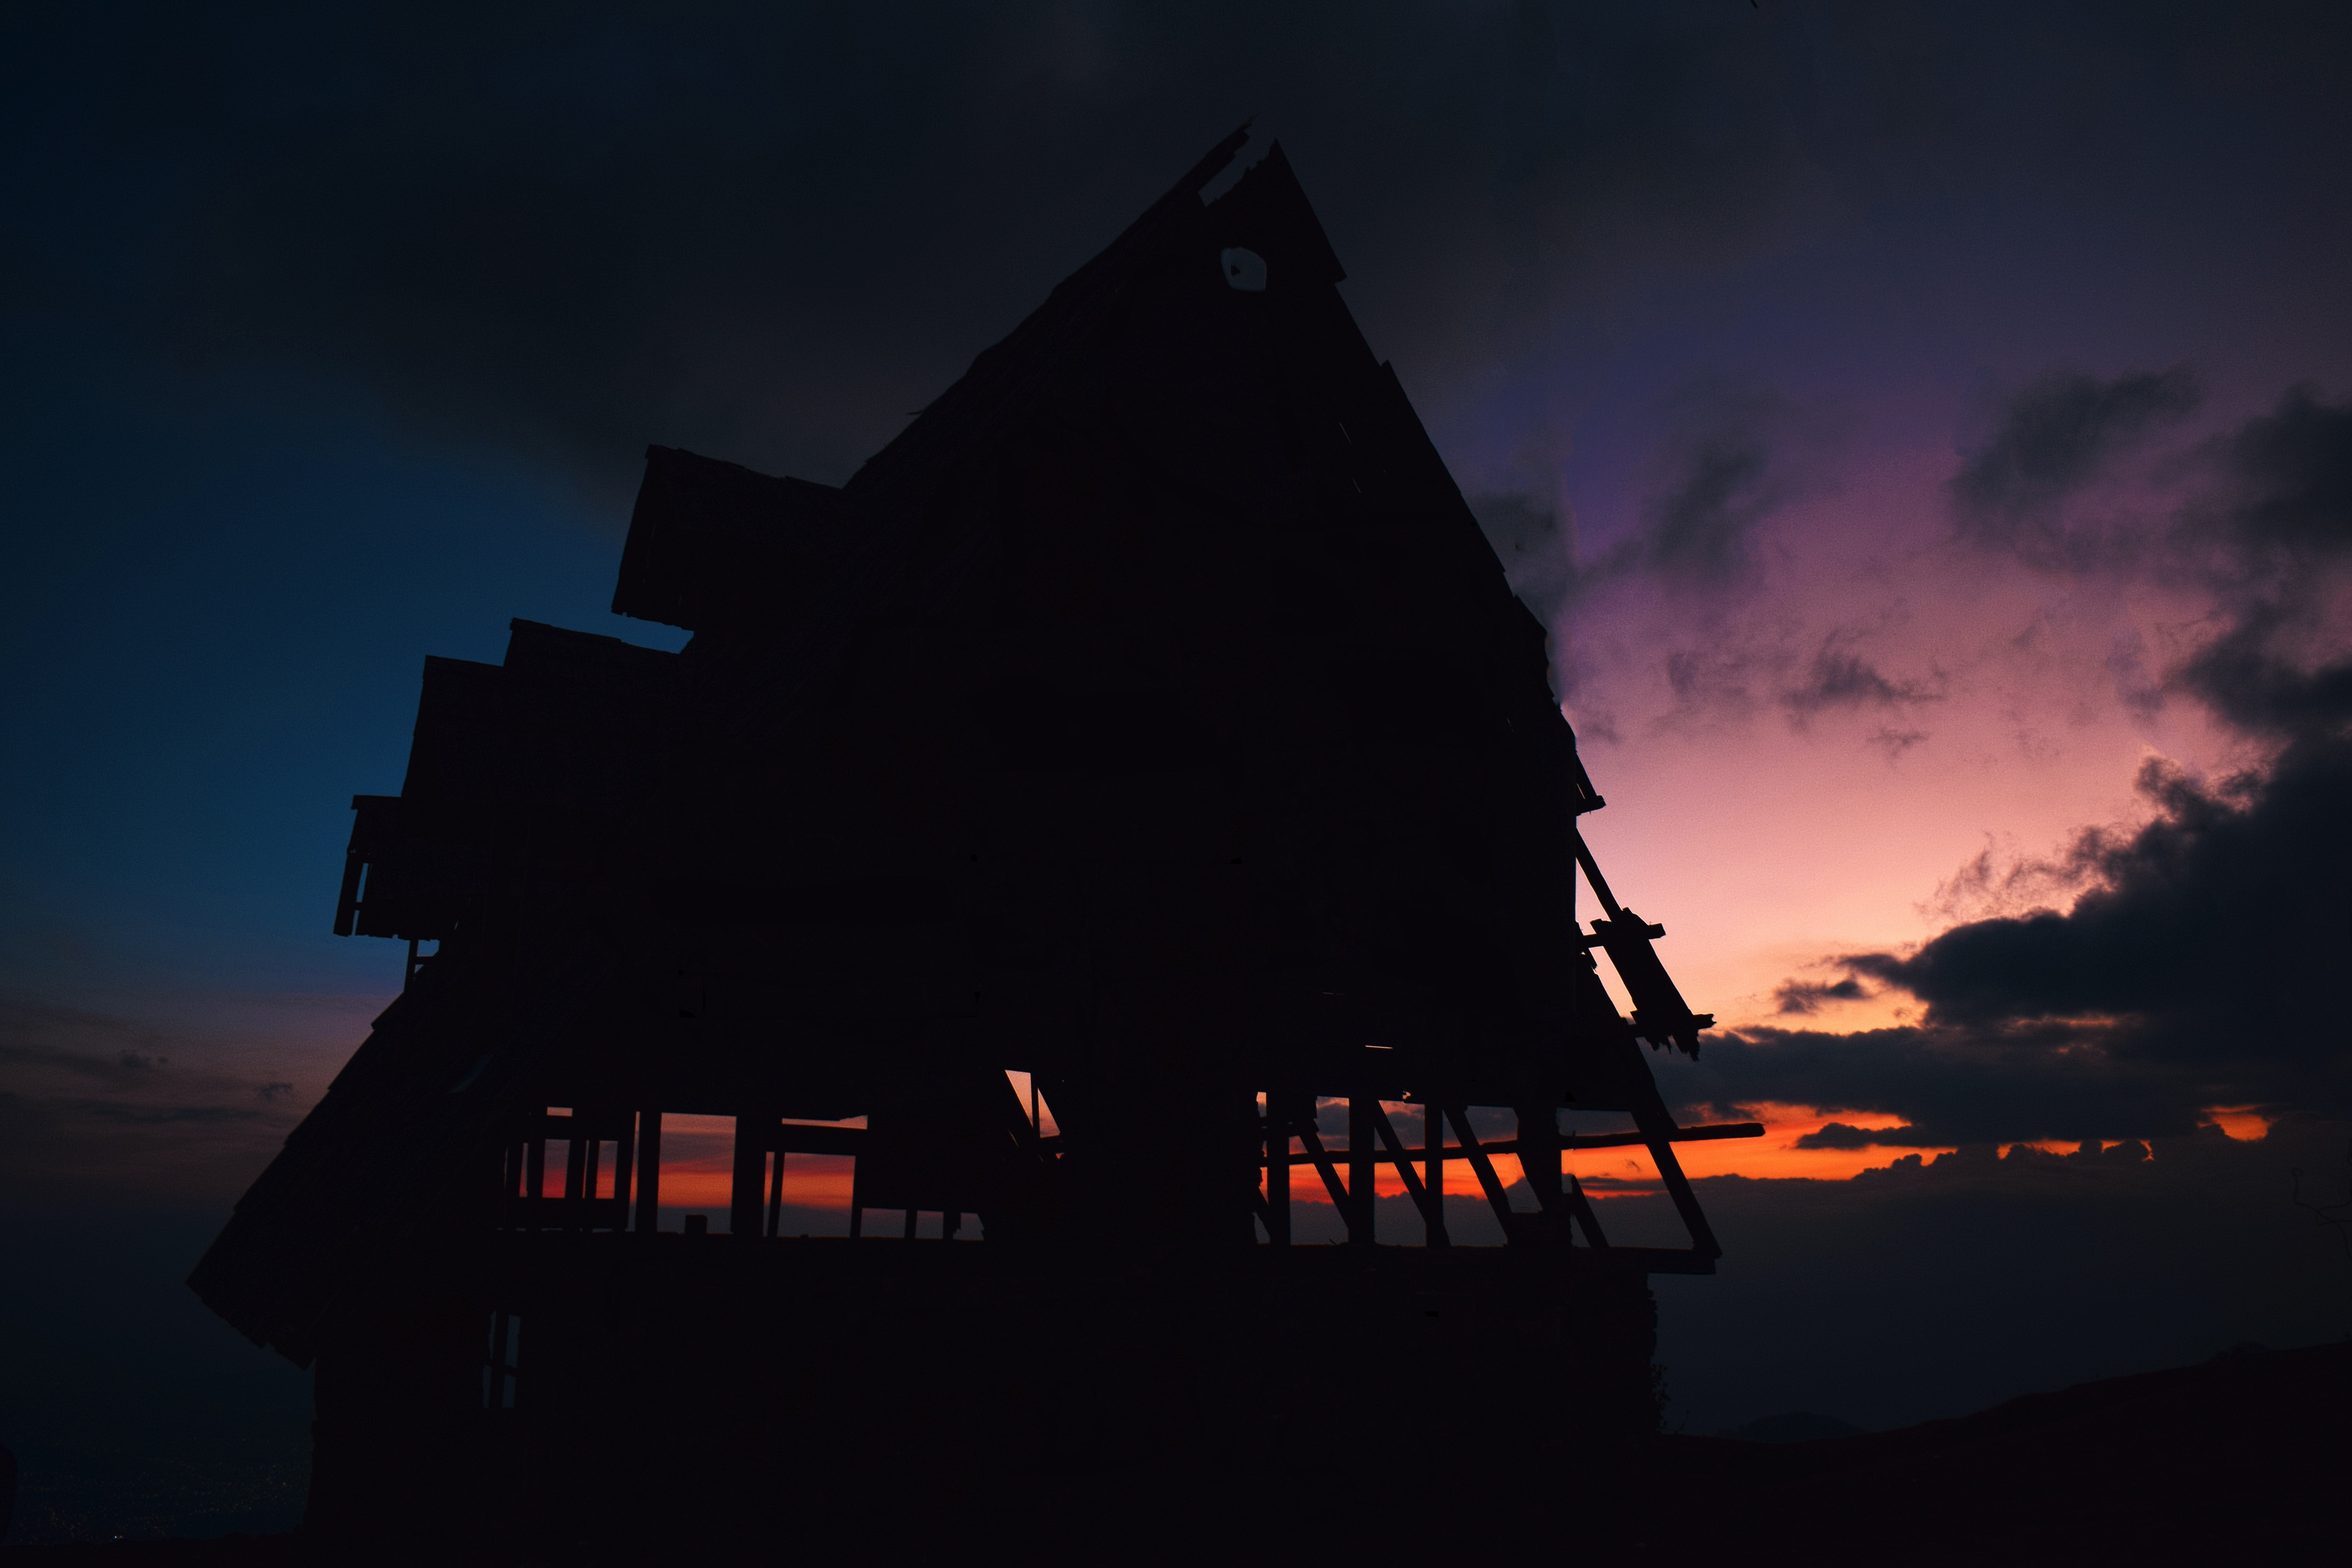 silhouette photography of house